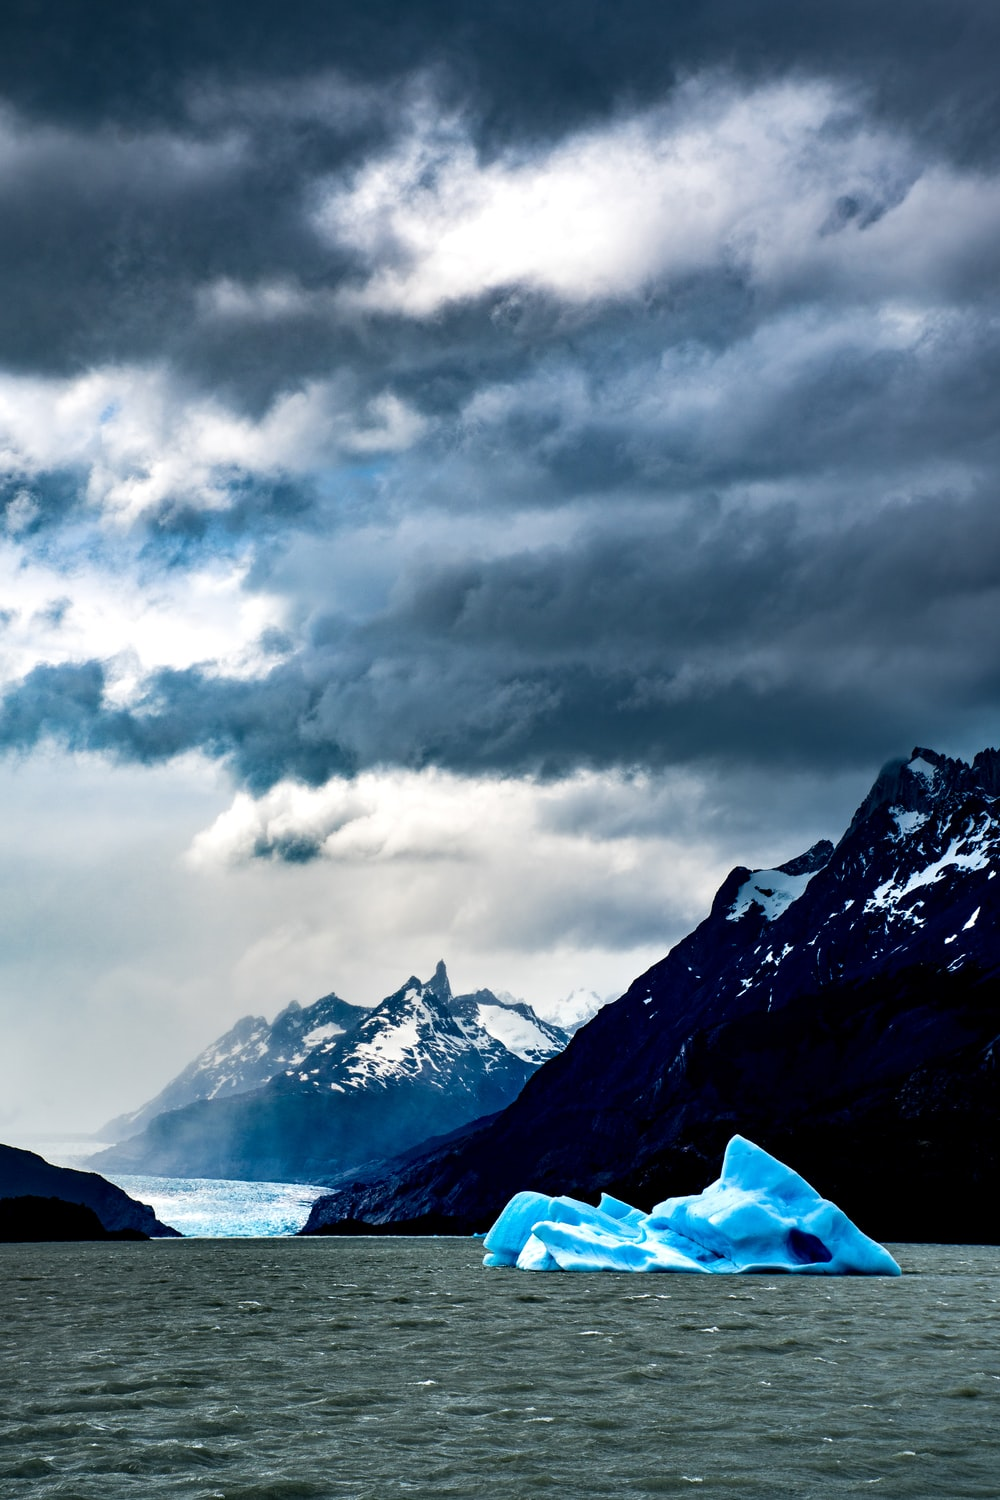 iceberg viewing mountain covered with snow under white and gray sky